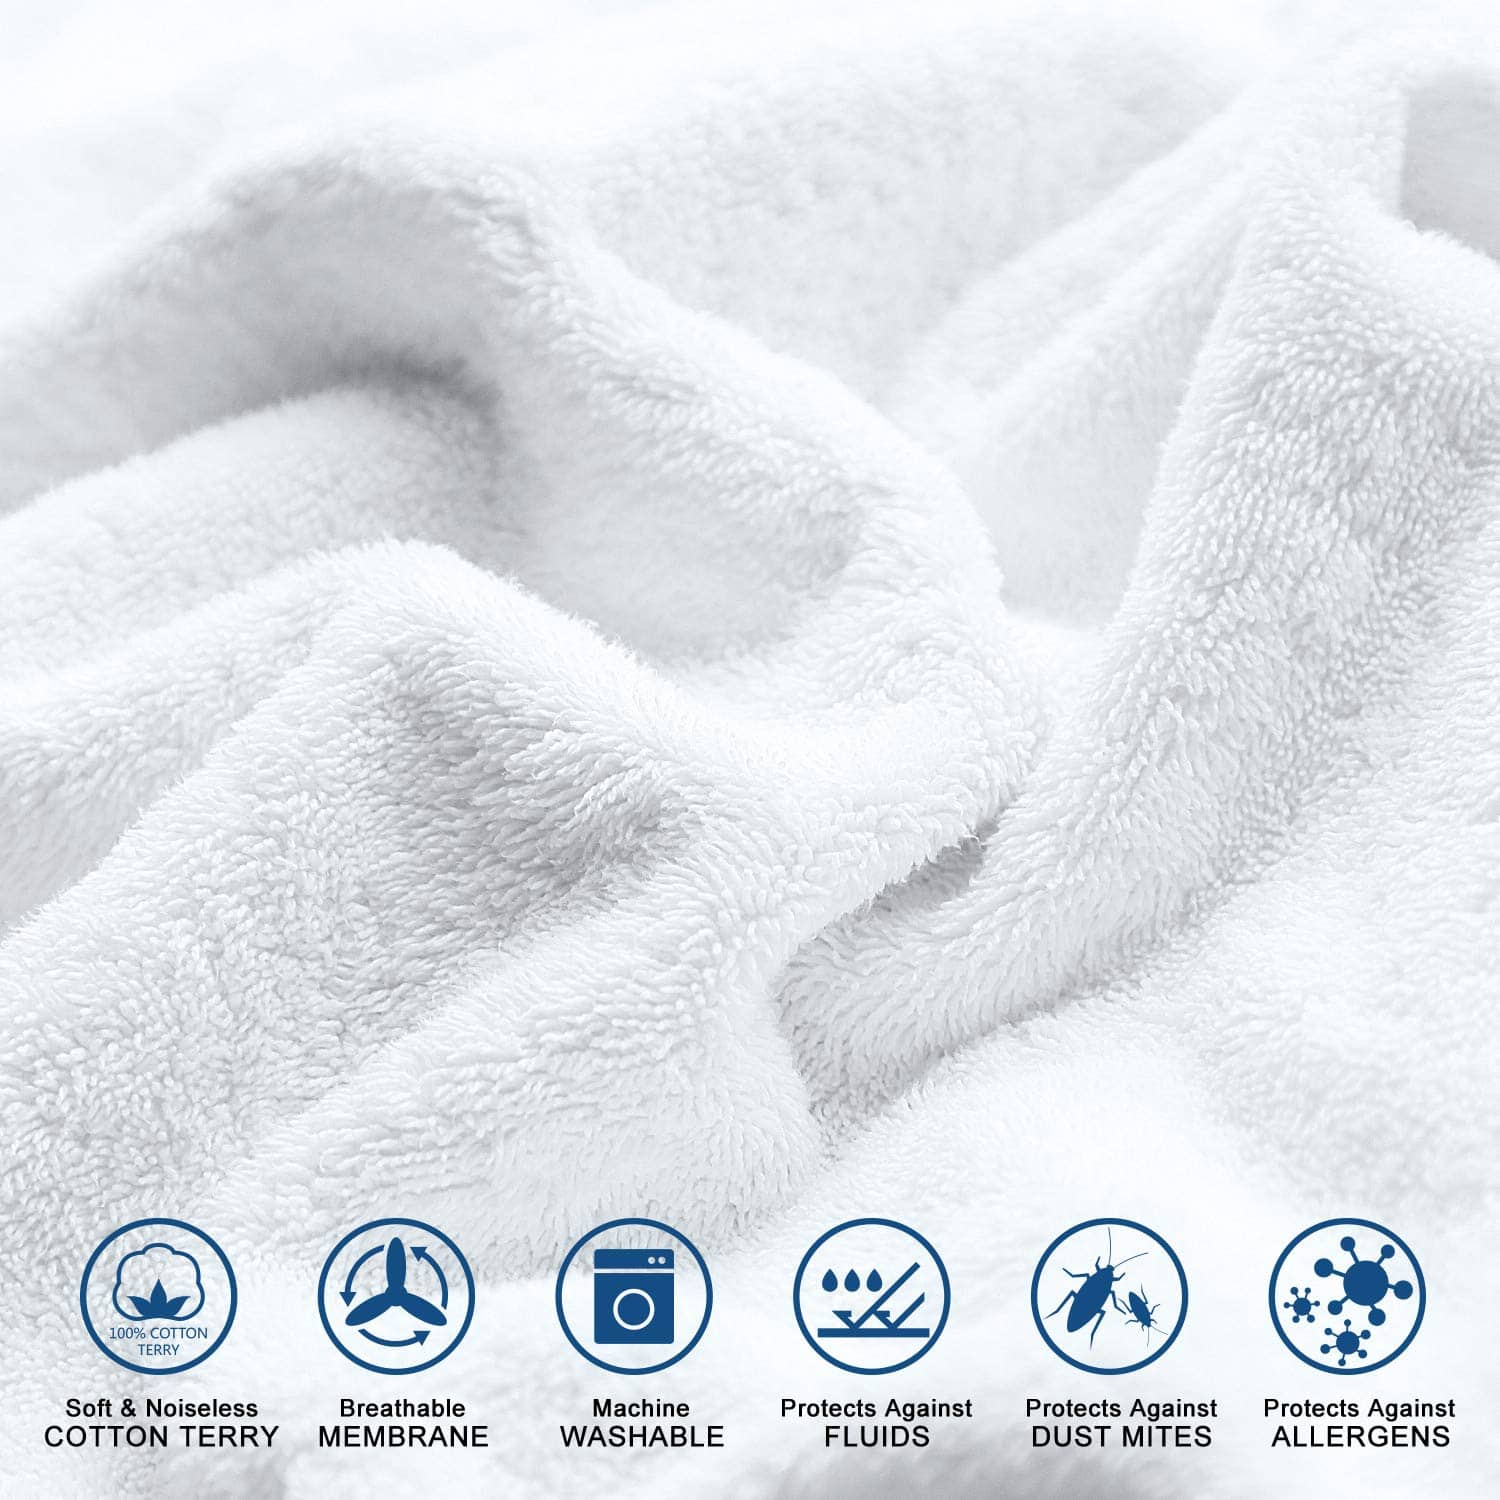 40% off Adoric Waterproof Mattress Protector (Full)for $11.99